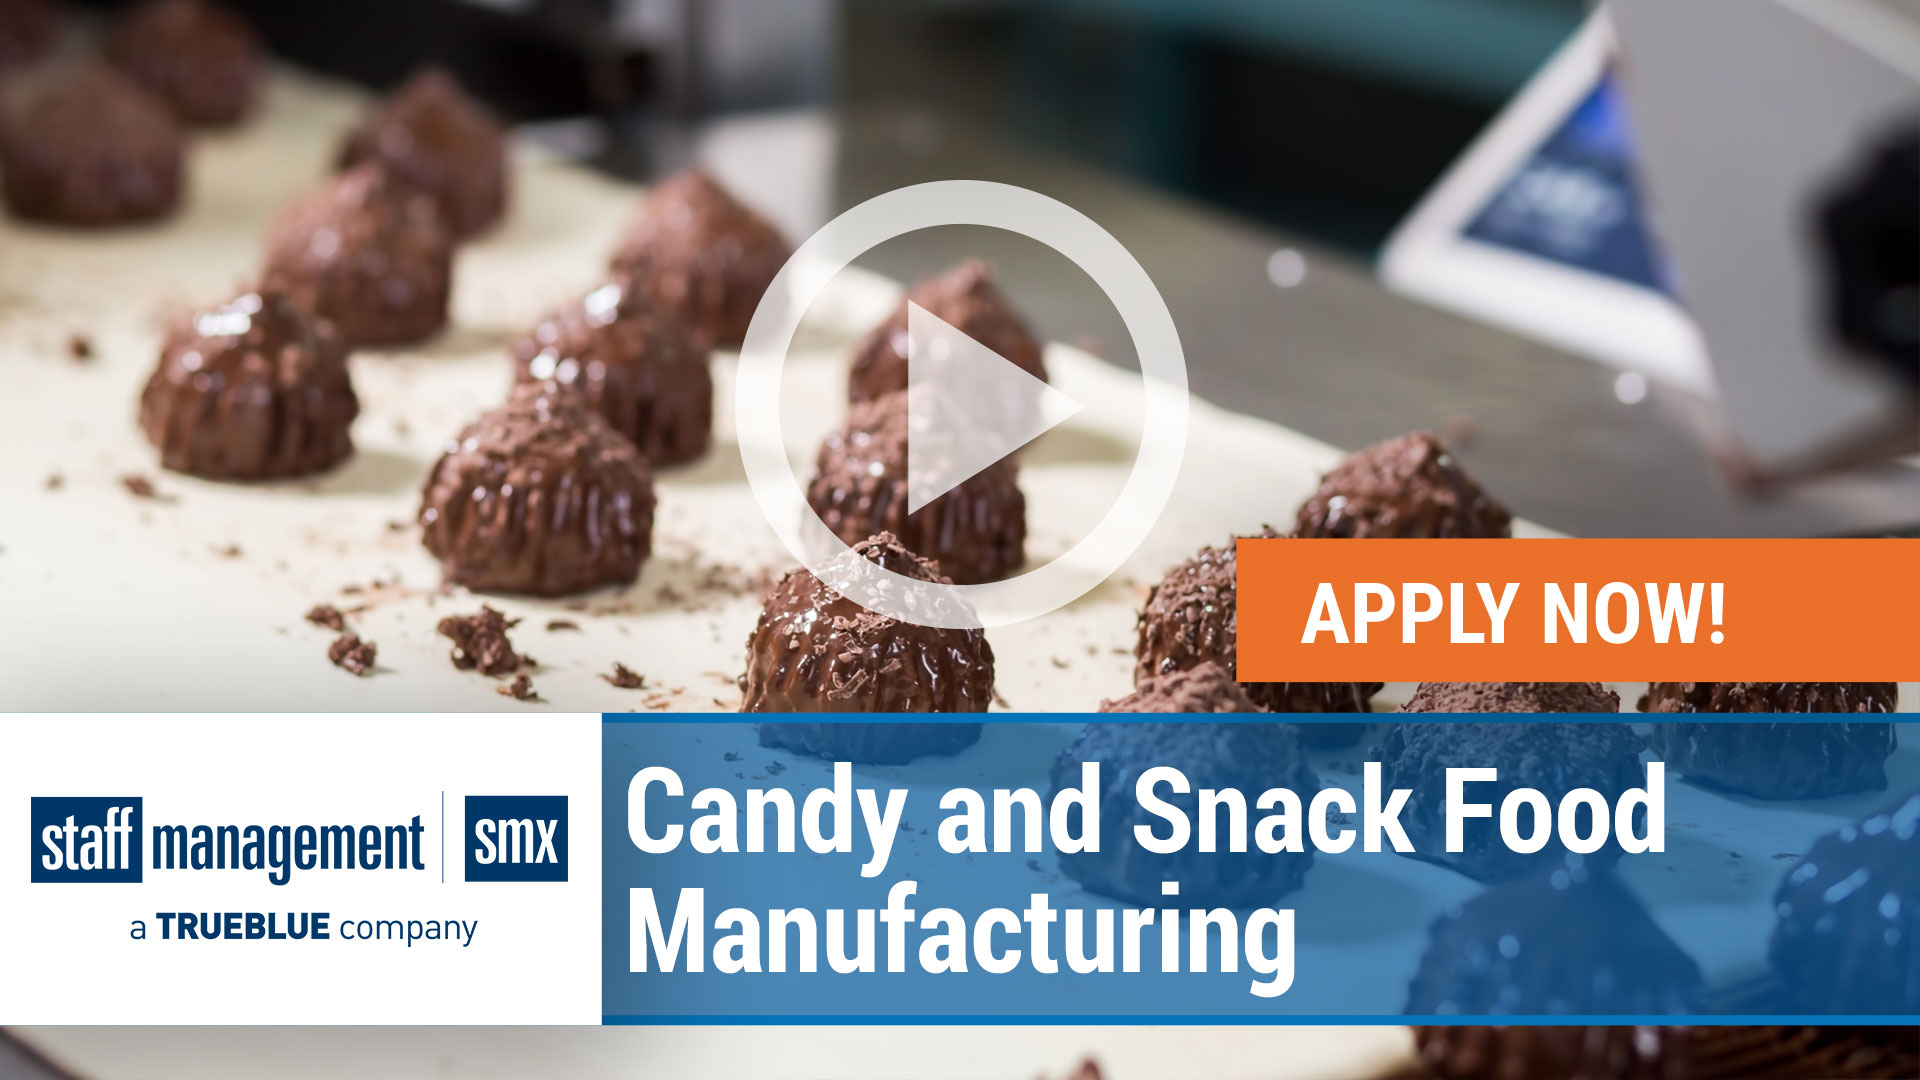 Watch our careers video for available job opening Production Worker - Premier Food Manufacturer in Hackettstown, NJ